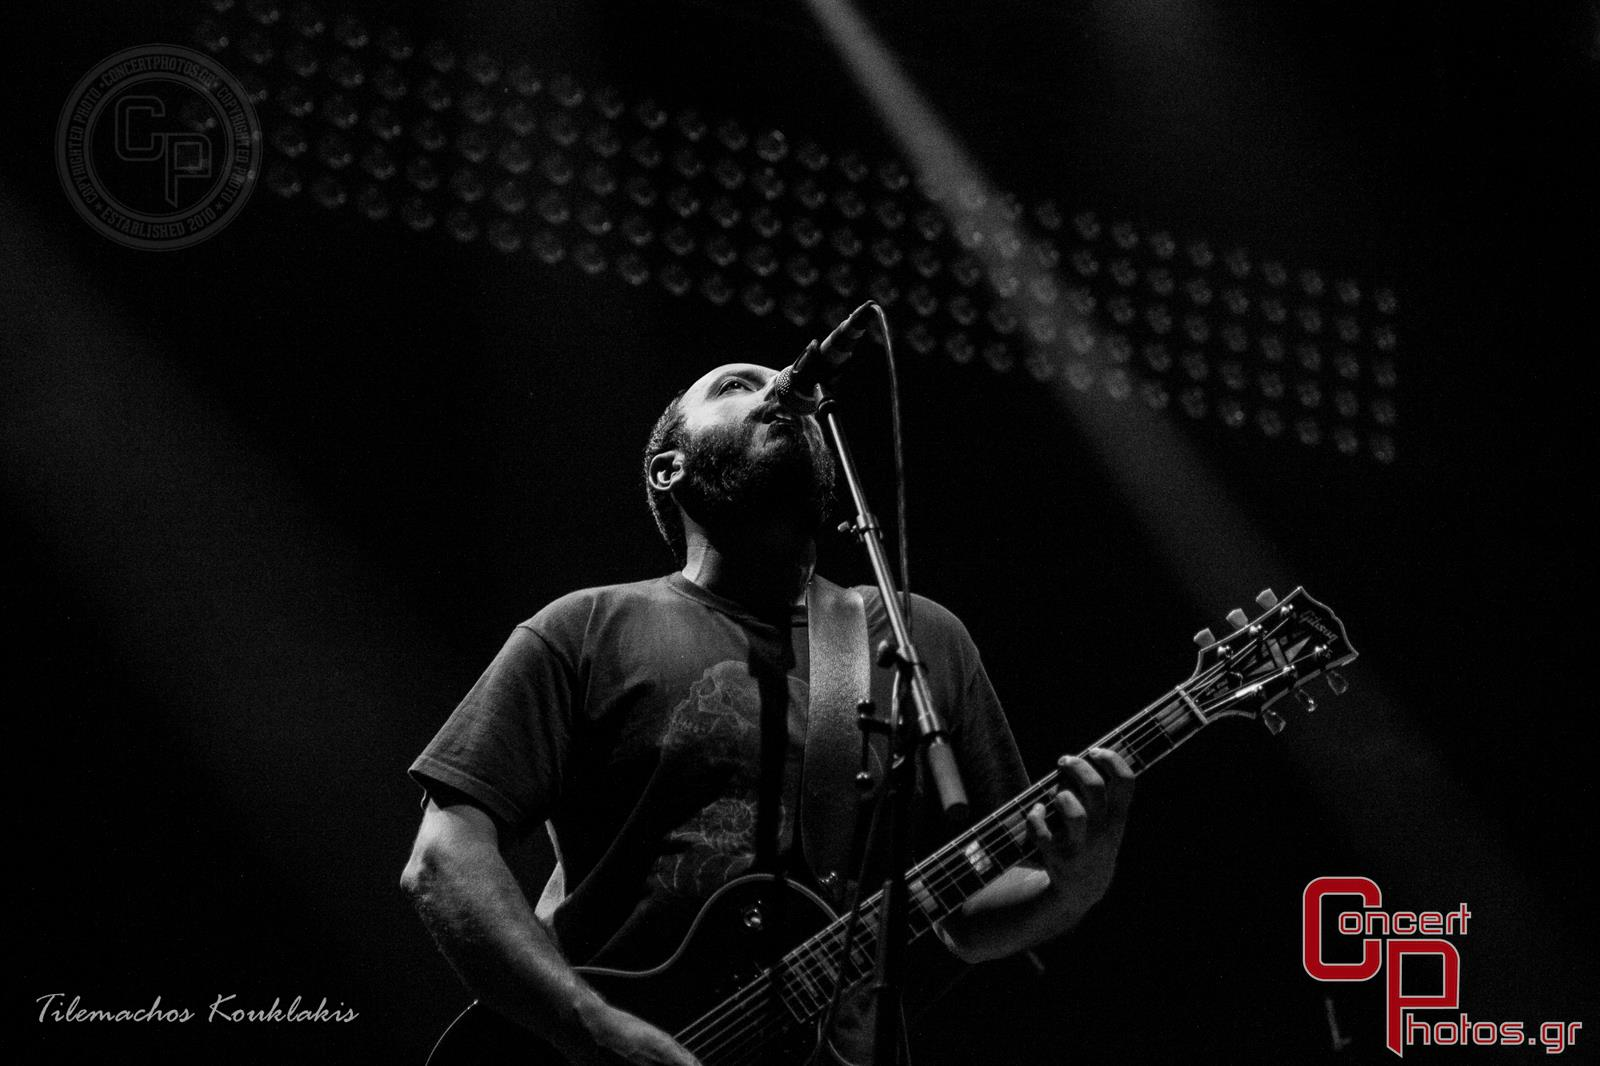 Neurosis-Neurosis photographer:  - concertphotos_20140707_23_56_37-5